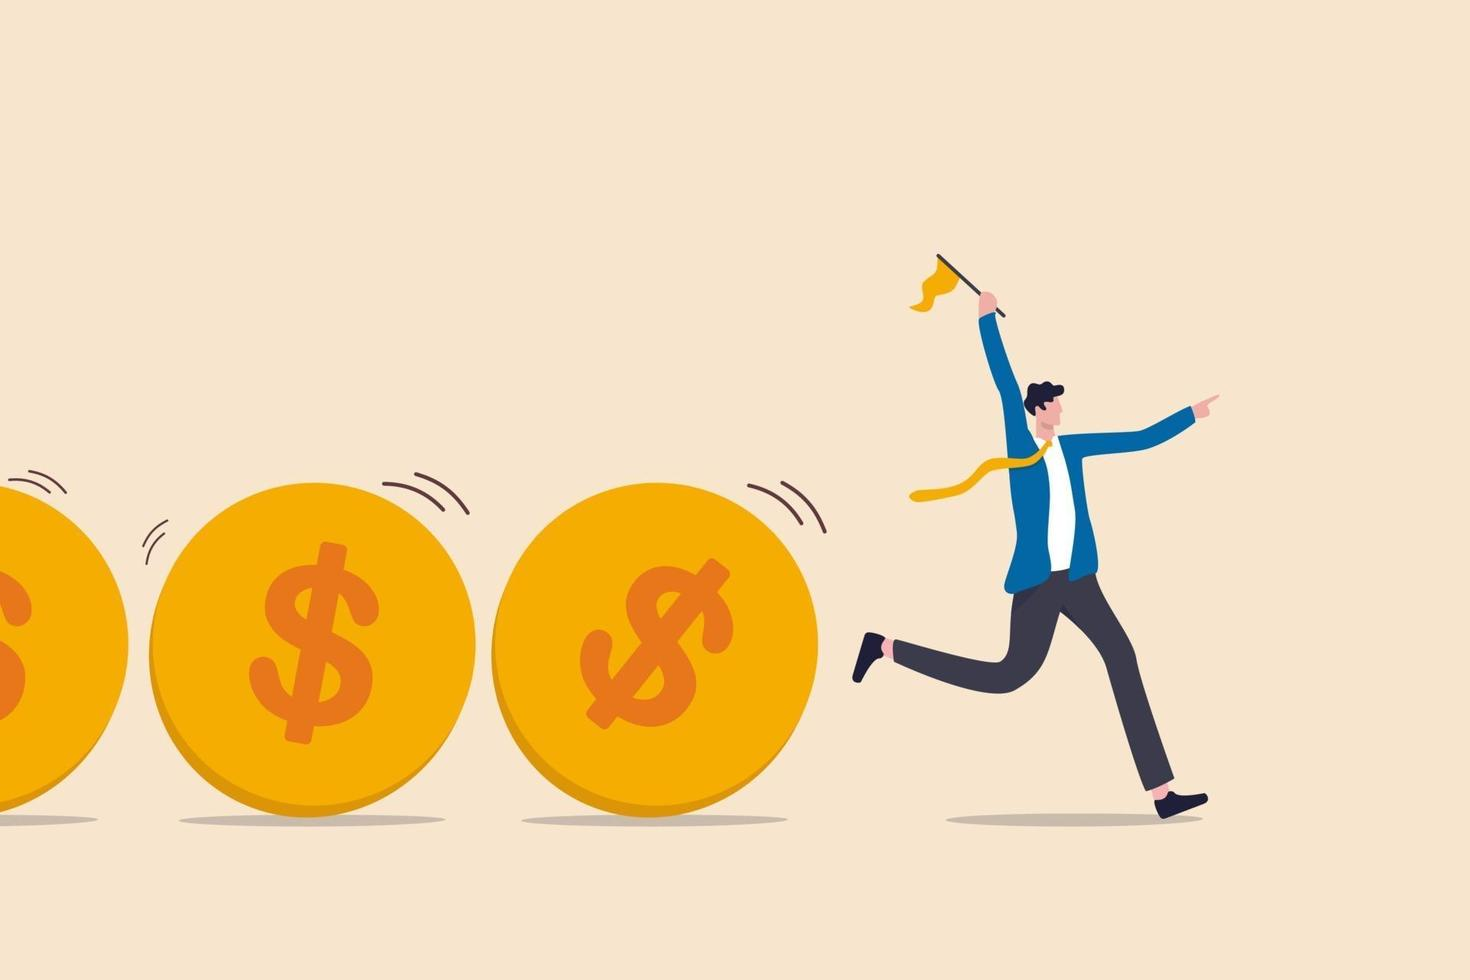 Cash flow, investment fund flow, fund raising, bank loan or financial activity to making money or profit concept, Businessman leader or investor holding flag control flow of money Dollar coins. vector